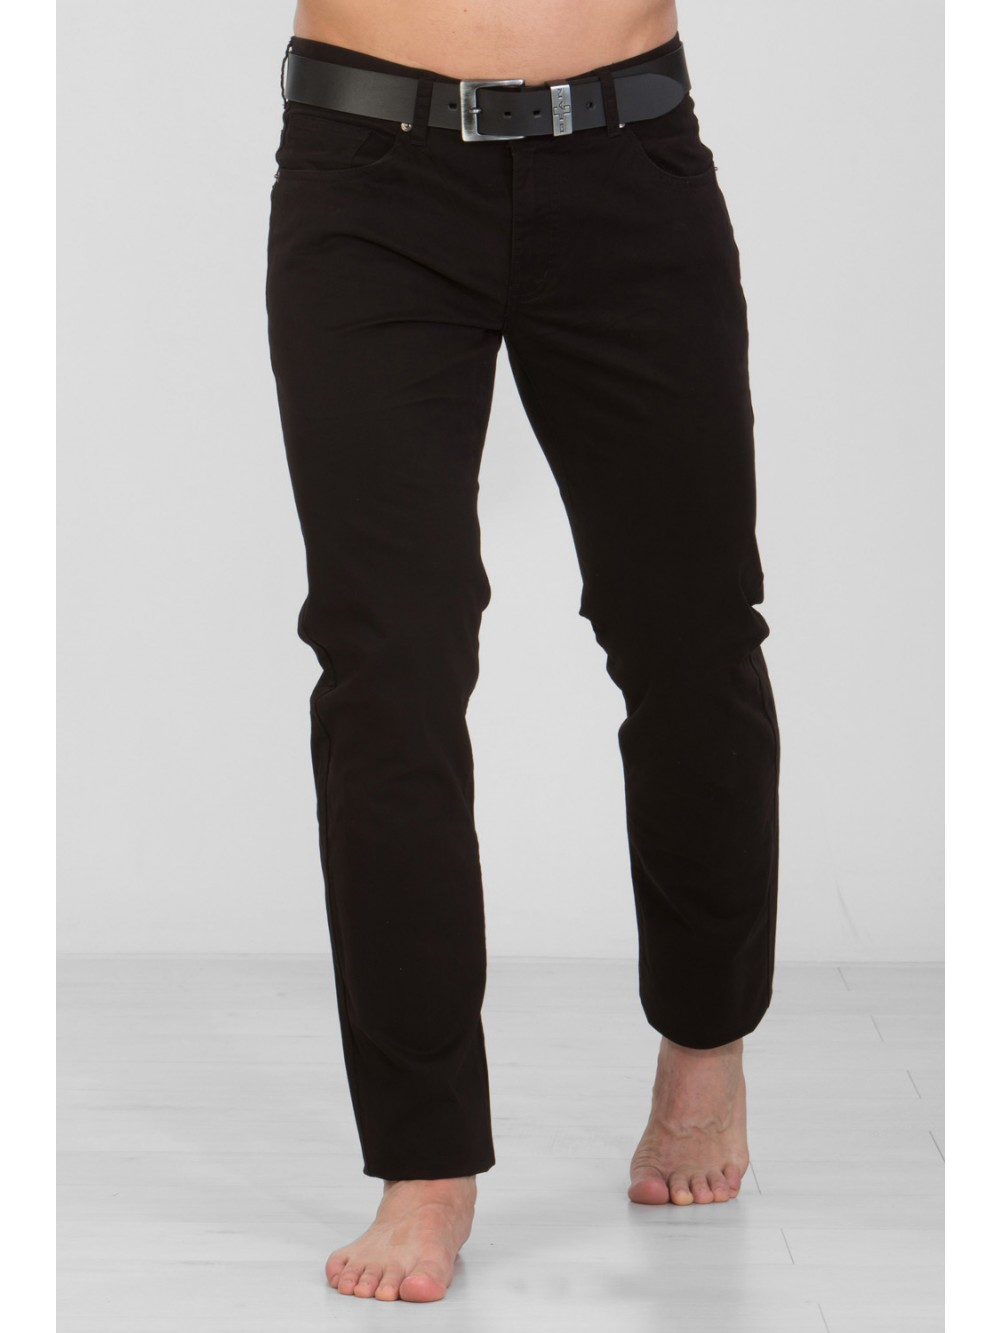 Mens Stretch Slim Fit CHINOS JSM248 - black